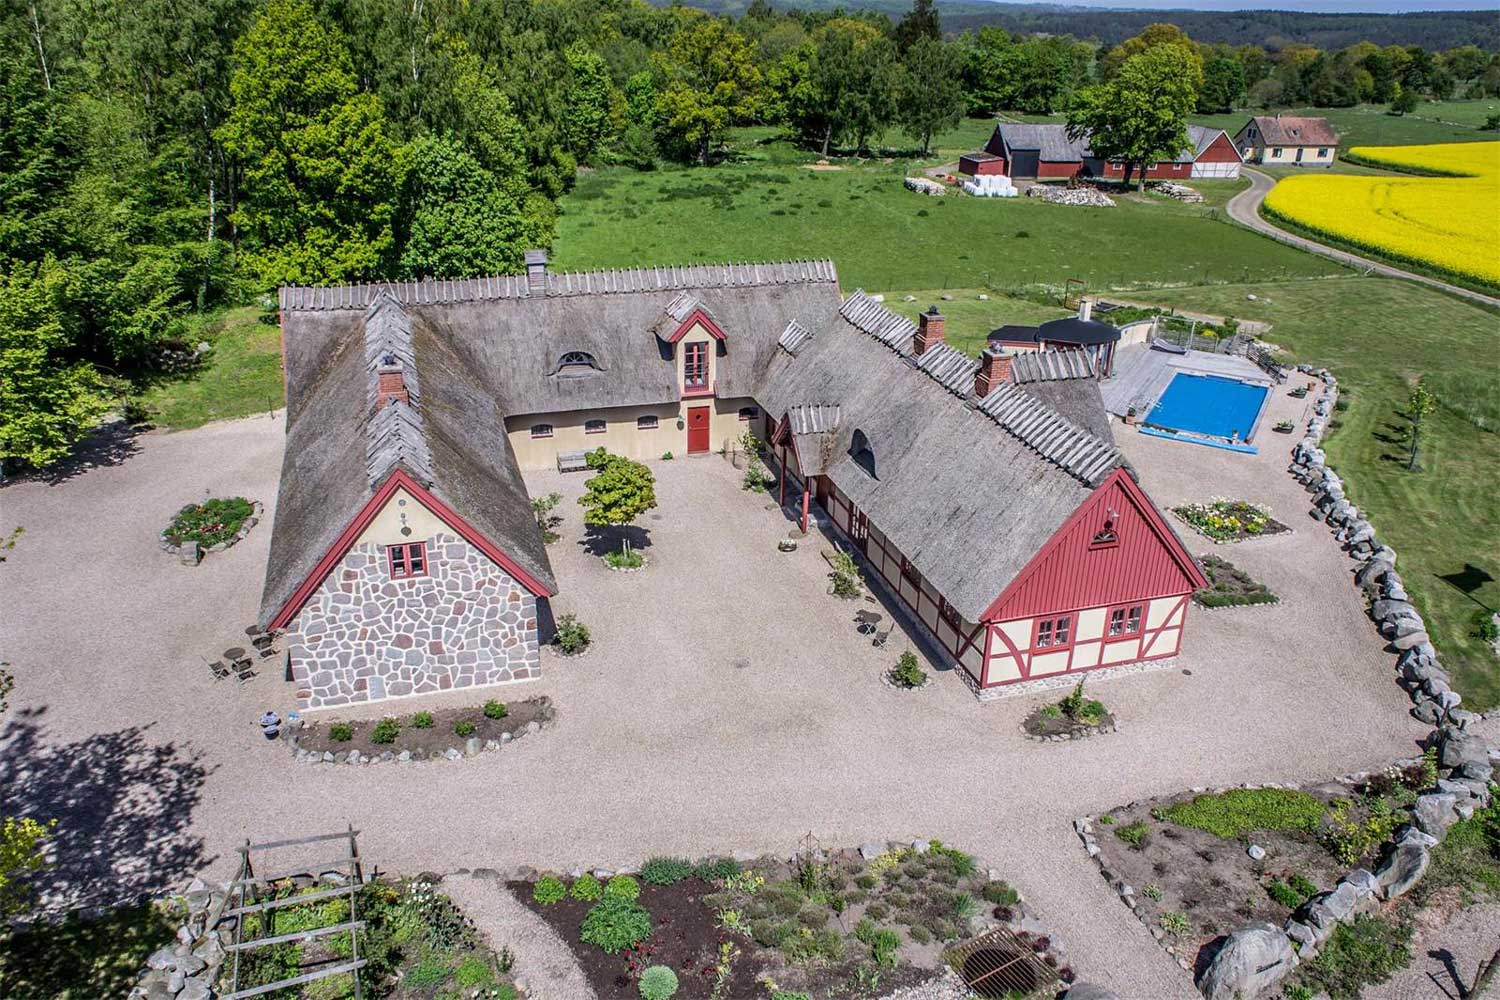 <b>Osterlen, Skane, Sweden</b><br/><i>8 Bedrooms, 5,564 sq. ft.</i><br/>Modern farmhouse overlooking Hanöbukten bay